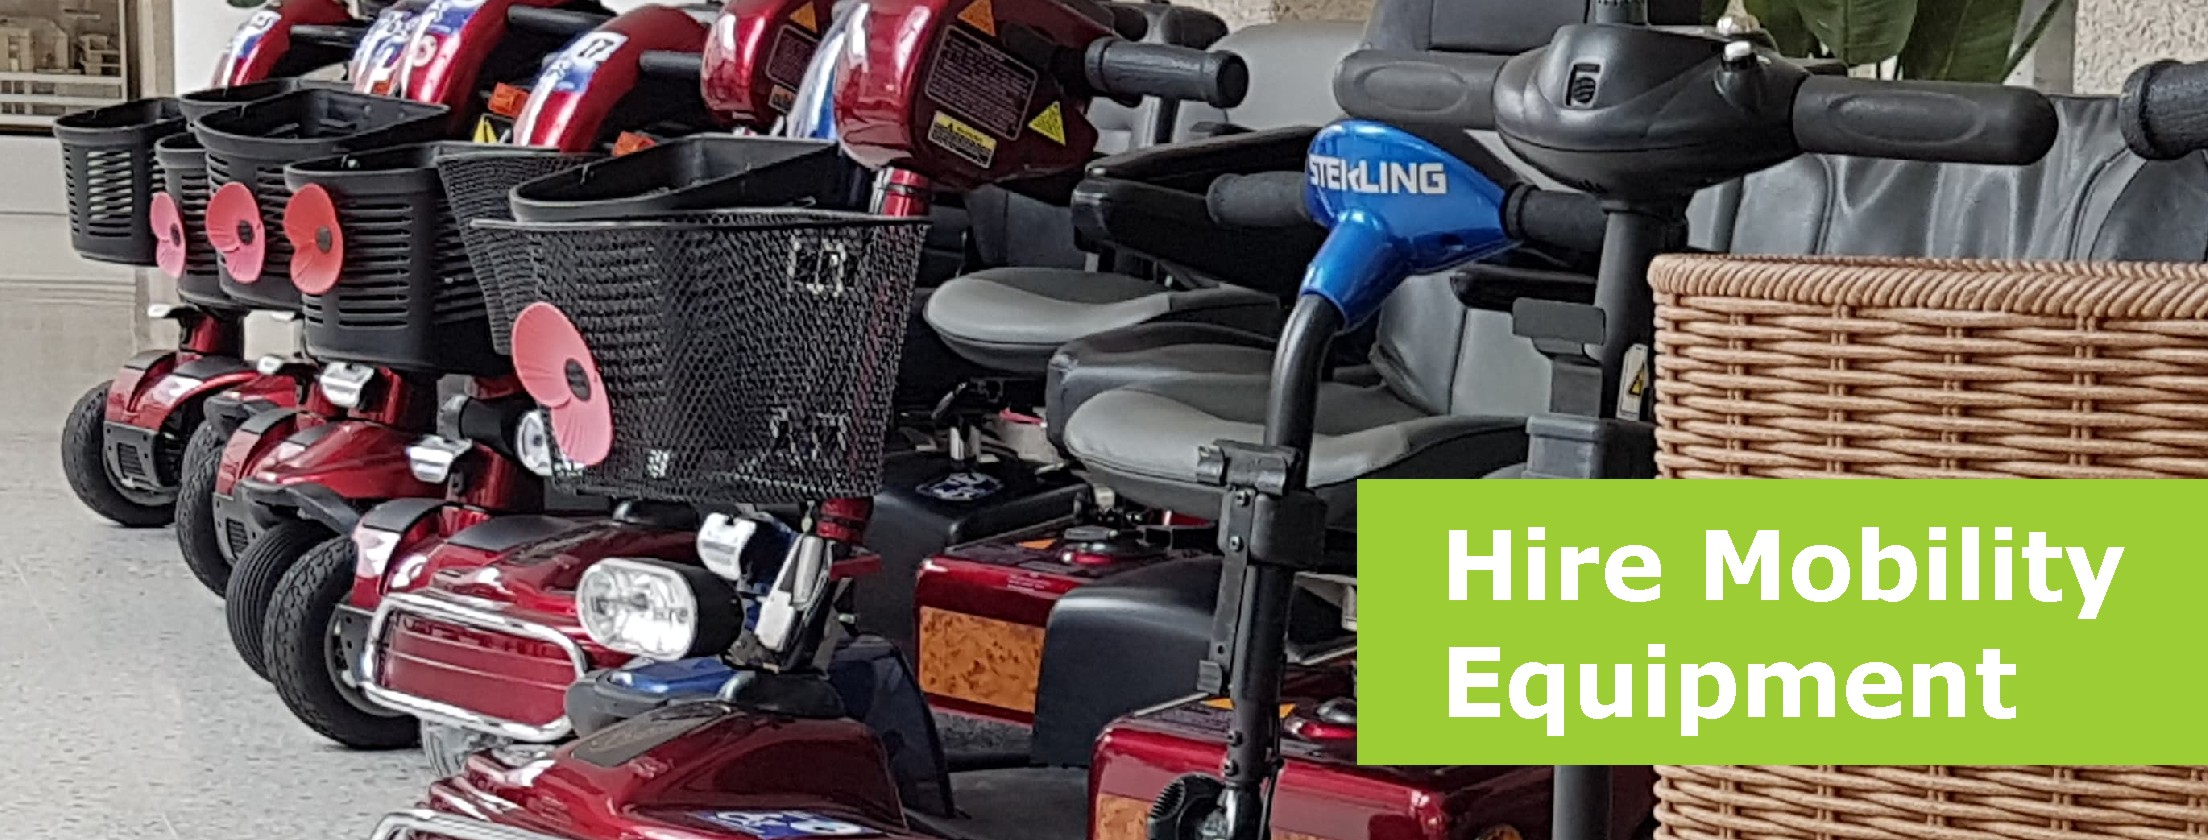 Hire Mobility Equipment top